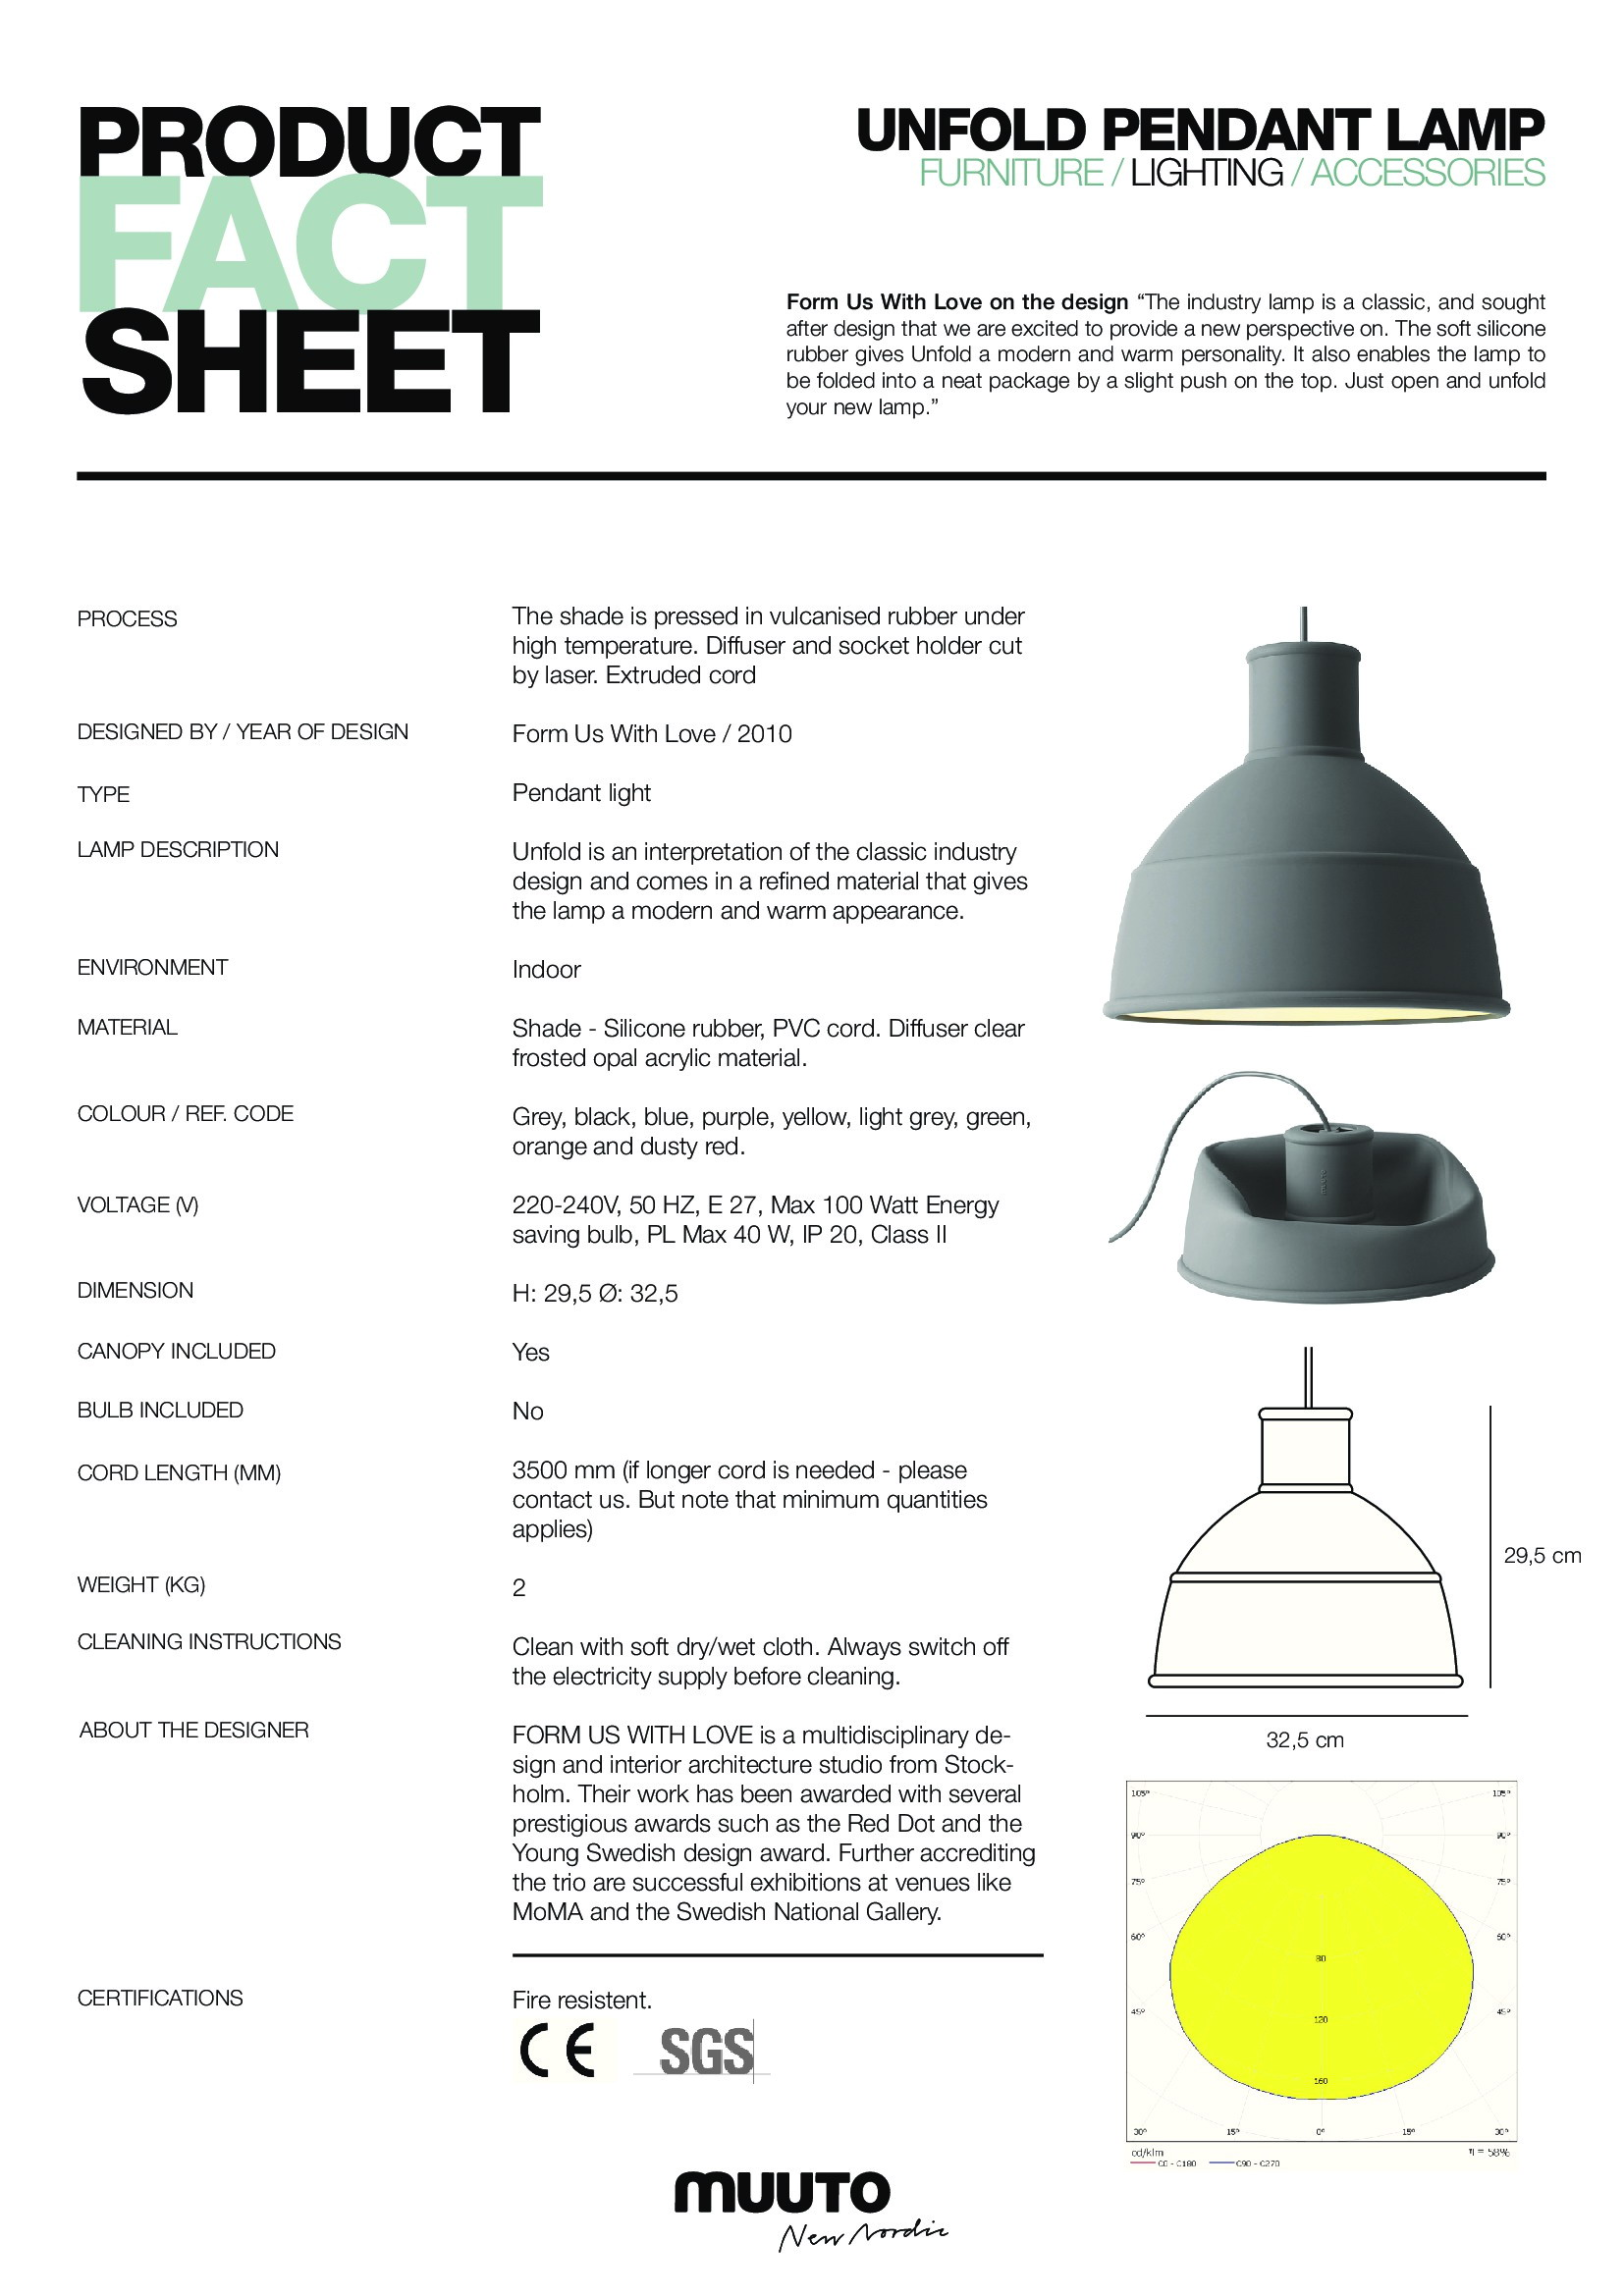 Click here to open fact sheet  sc 1 st  Funktionalley & Muuto Unfold Pendant Light | Funktion Alley azcodes.com